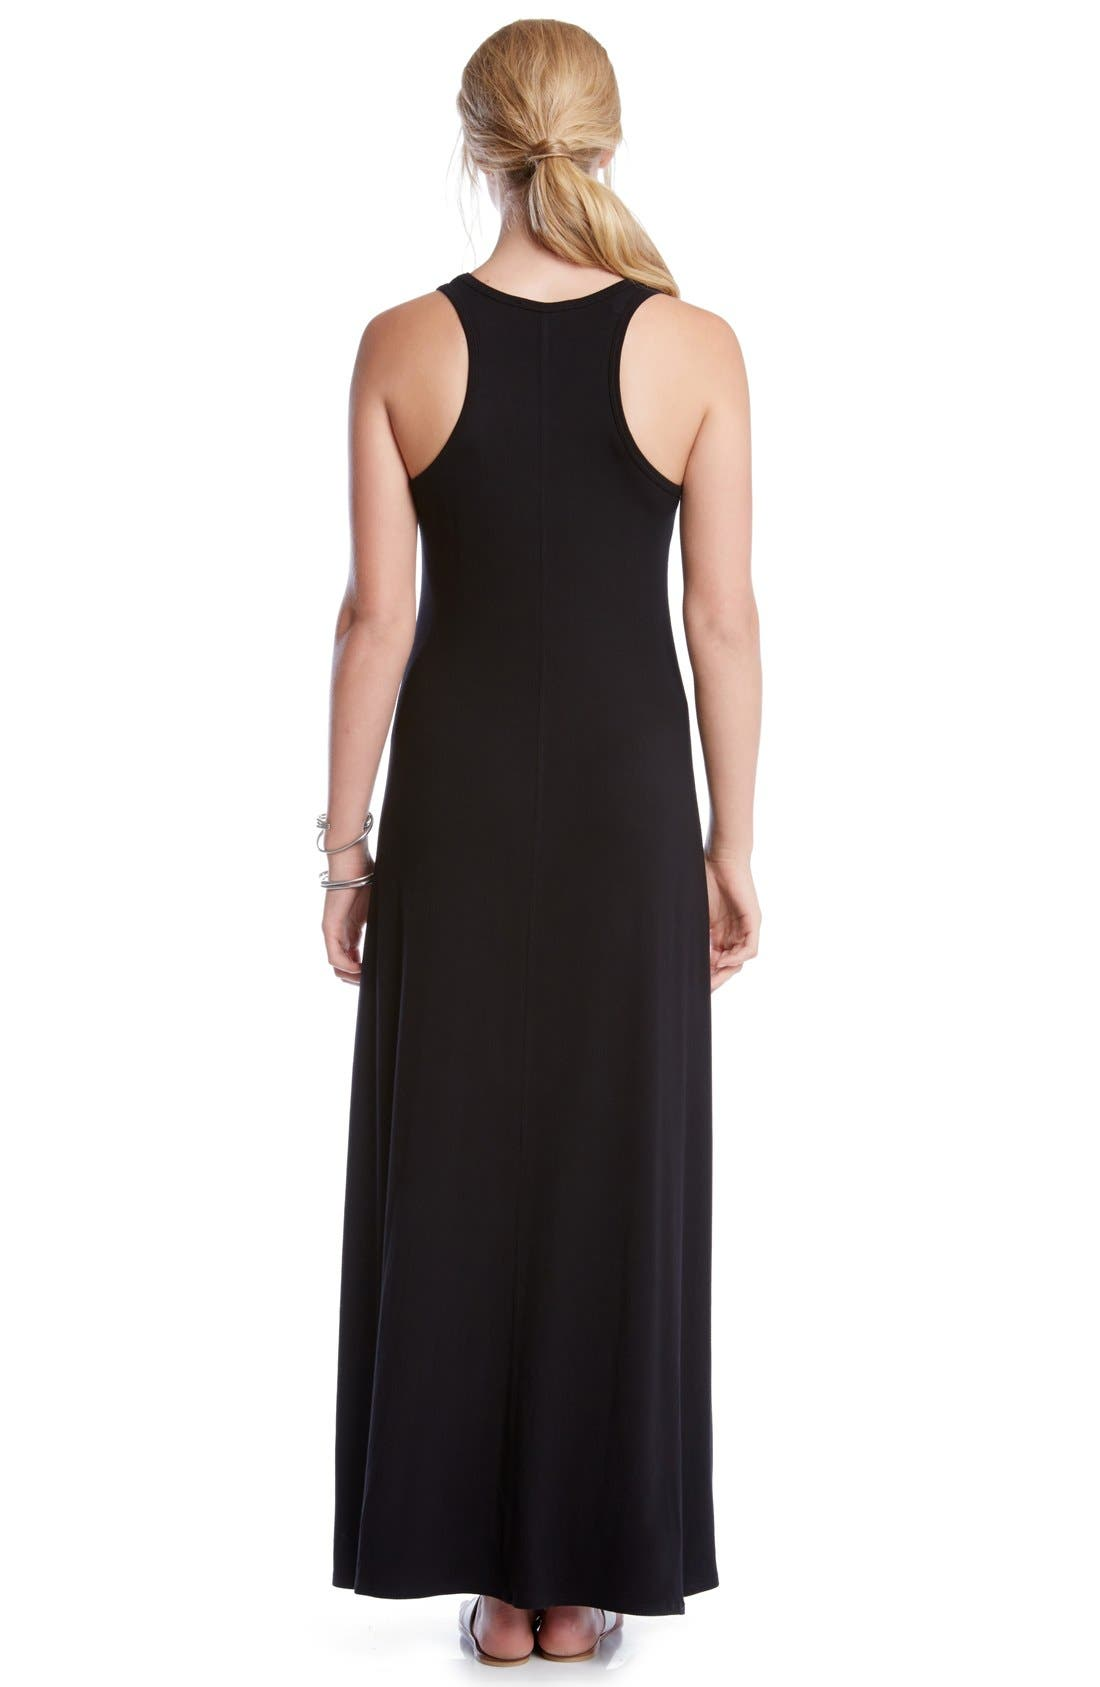 'Tasha' Racerback Jersey Maxi Dress,                             Alternate thumbnail 3, color,                             Black